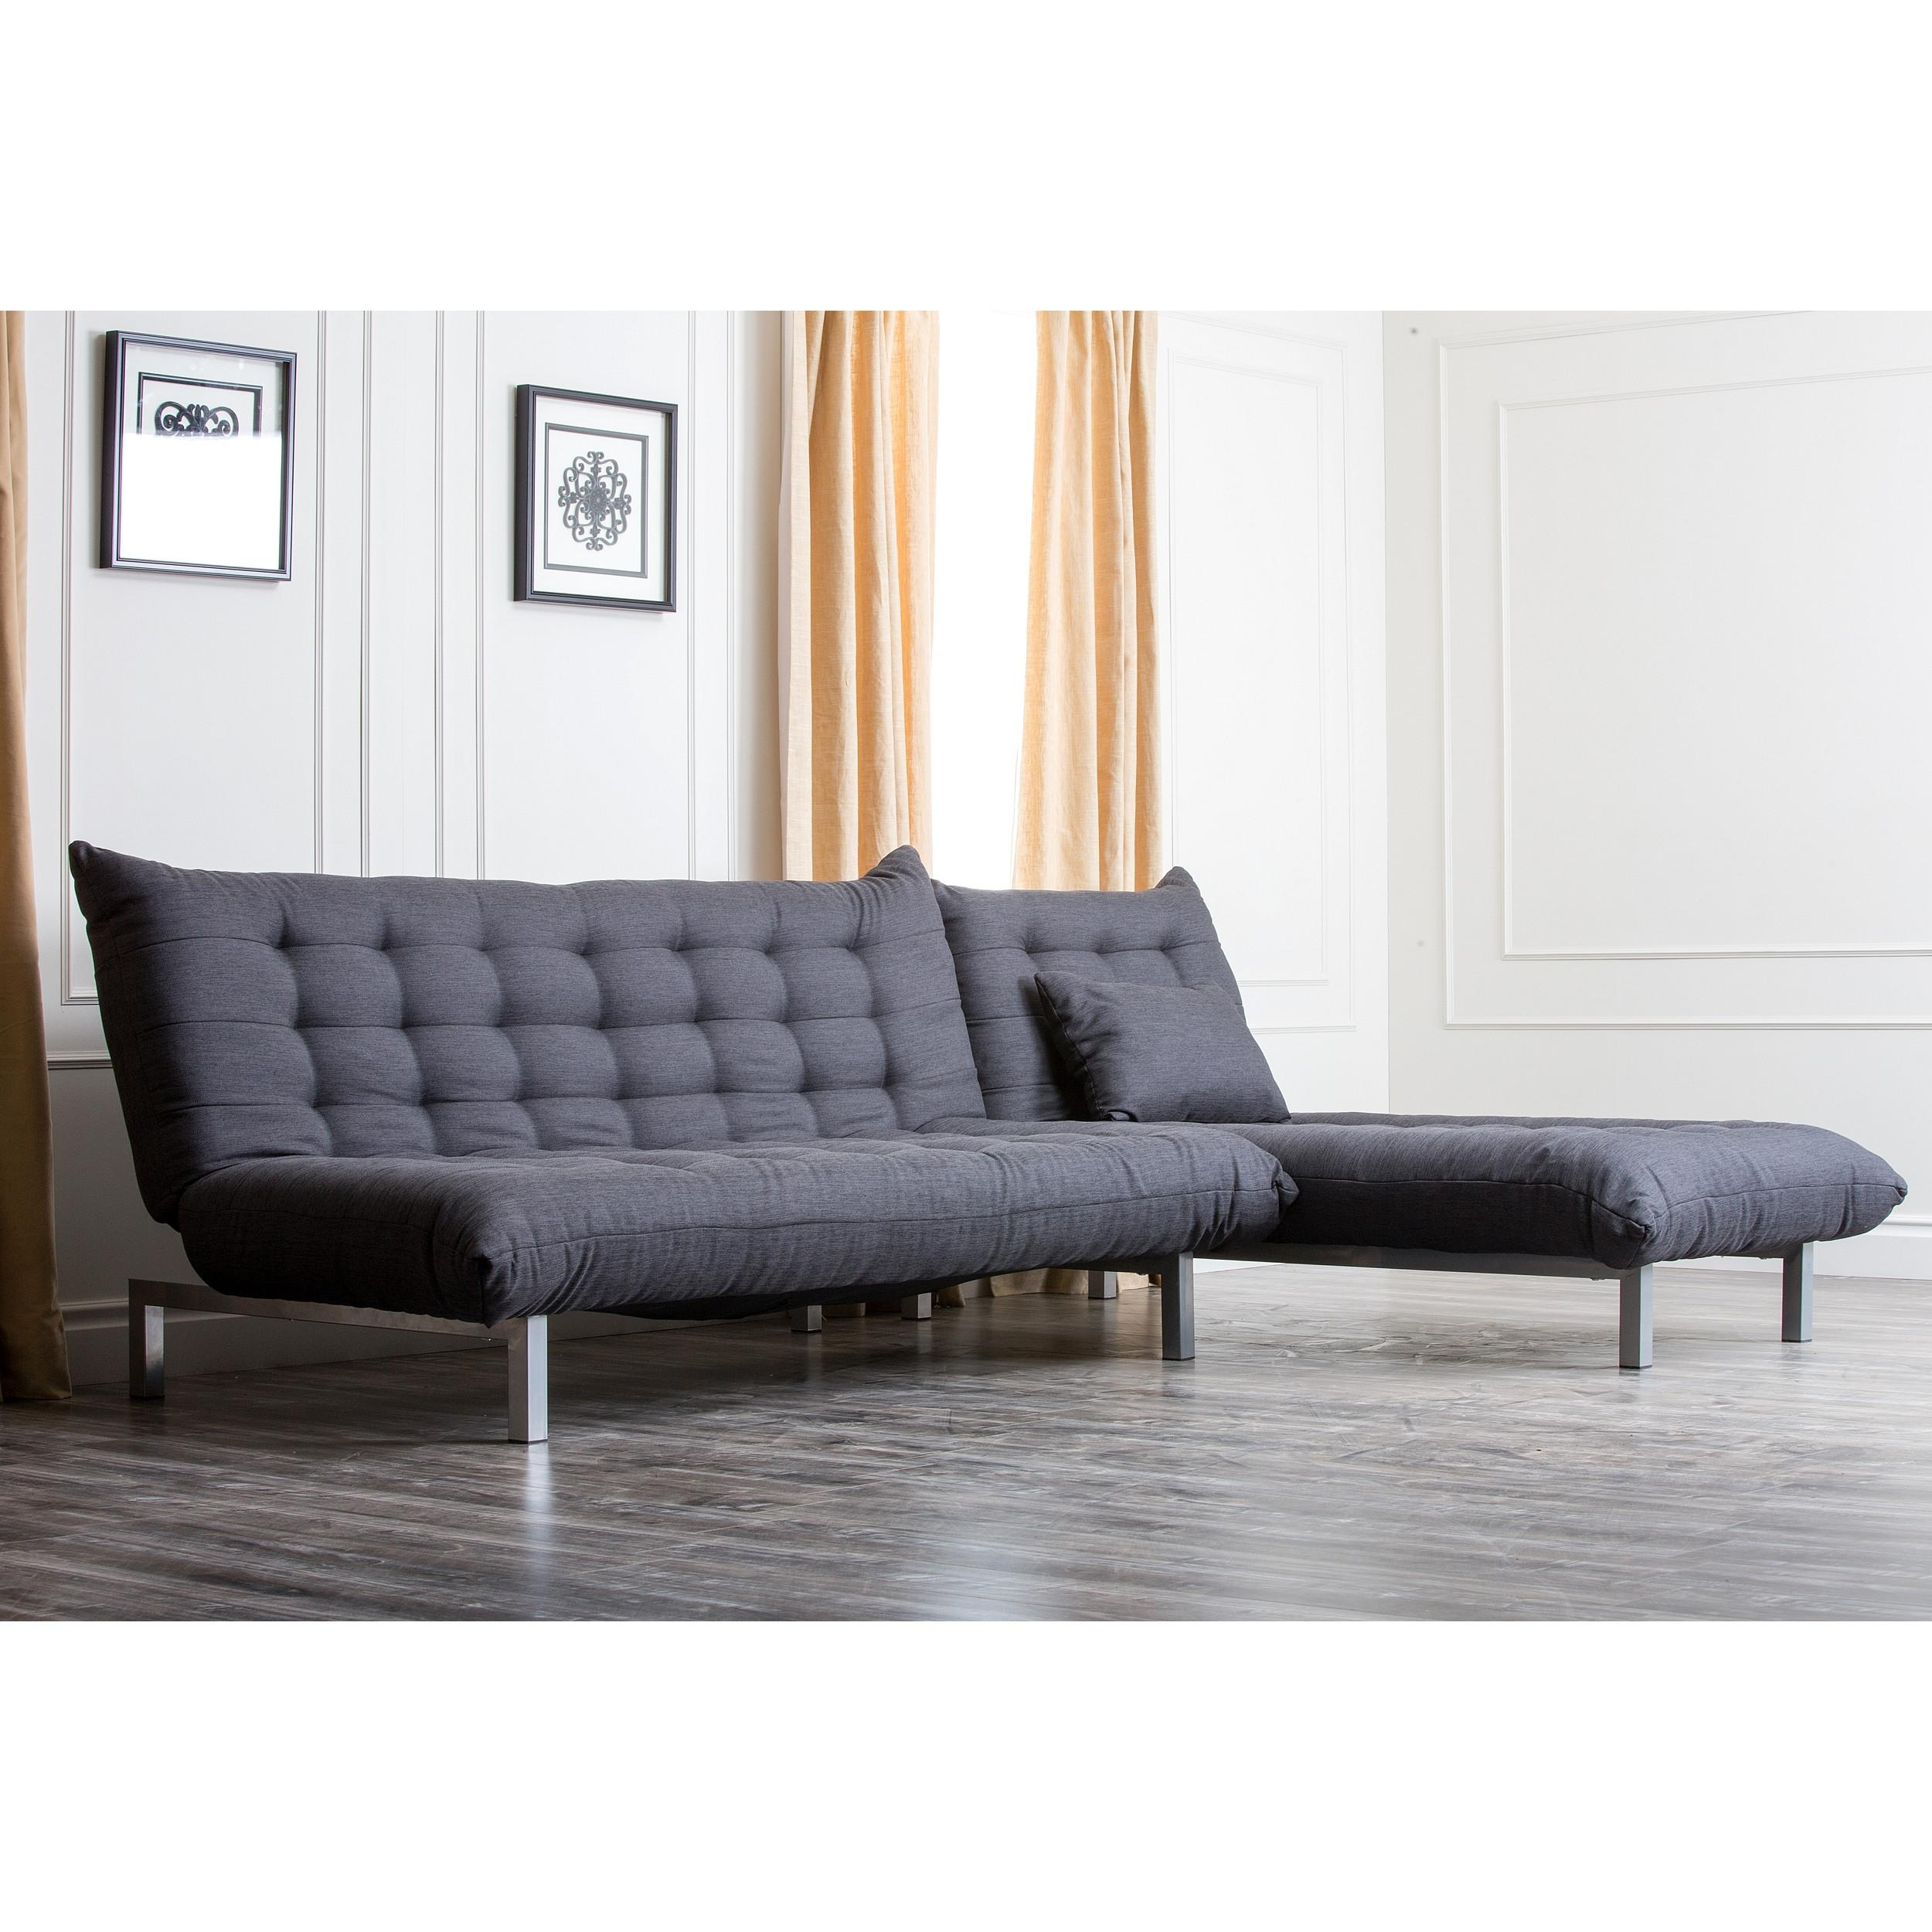 Bailey Reversible Chaise Sofa Sofa Boston Interiors Sofa ~ Hmmi With Boston Interiors Sofas (Image 4 of 20)